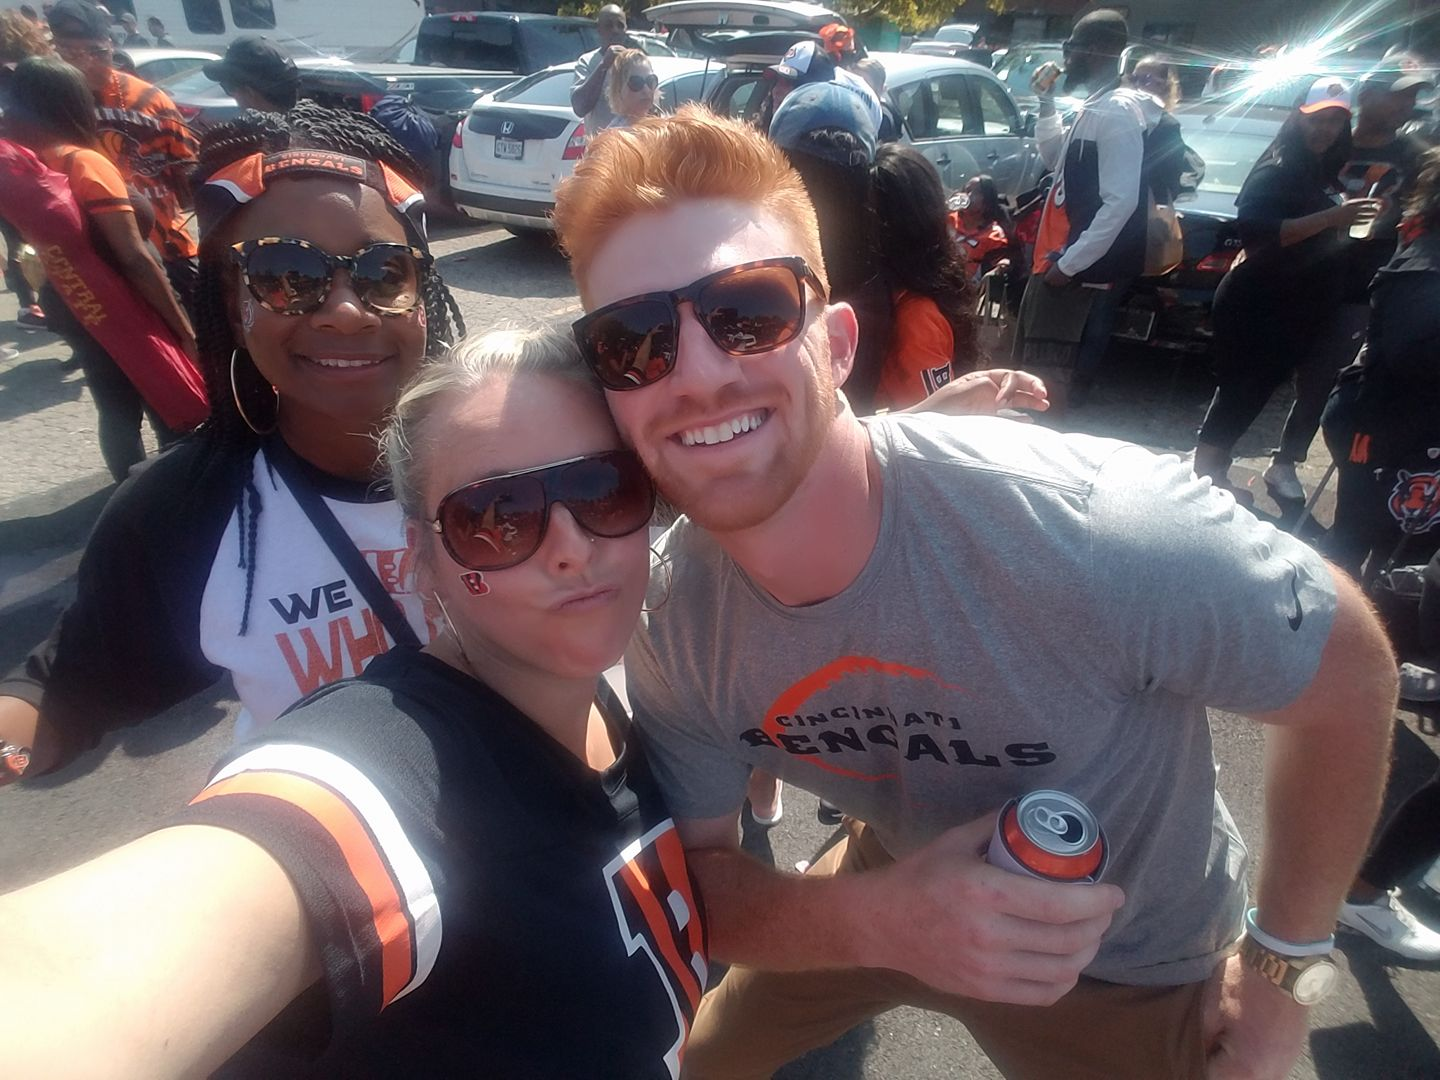 Cincinnati Bengals Andy Dalton getting in on the action!